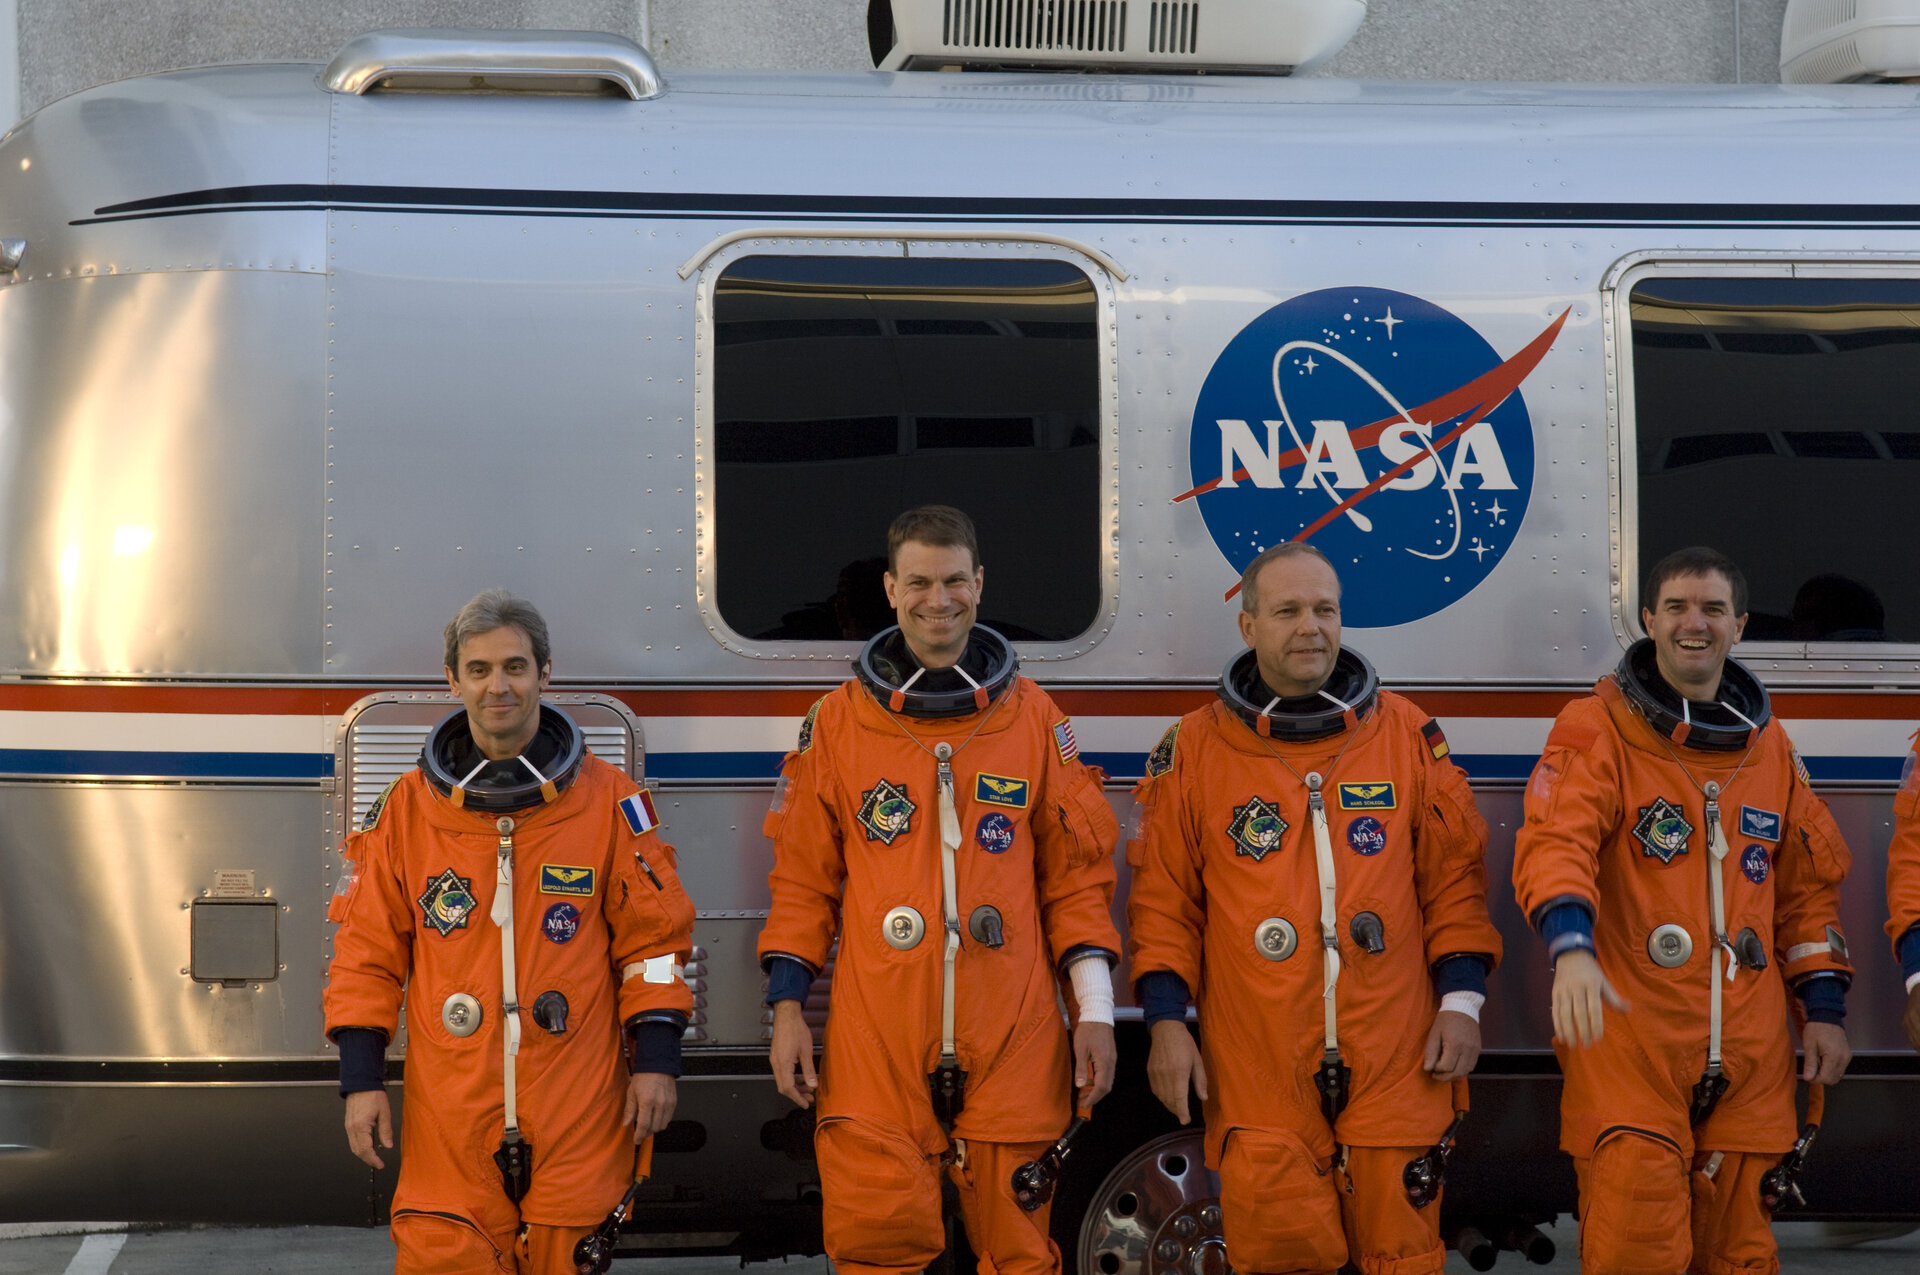 Crewmembers of the STS-122 shuttle mission during the practice countdown at NASA's Kennedy Space Center, Florida